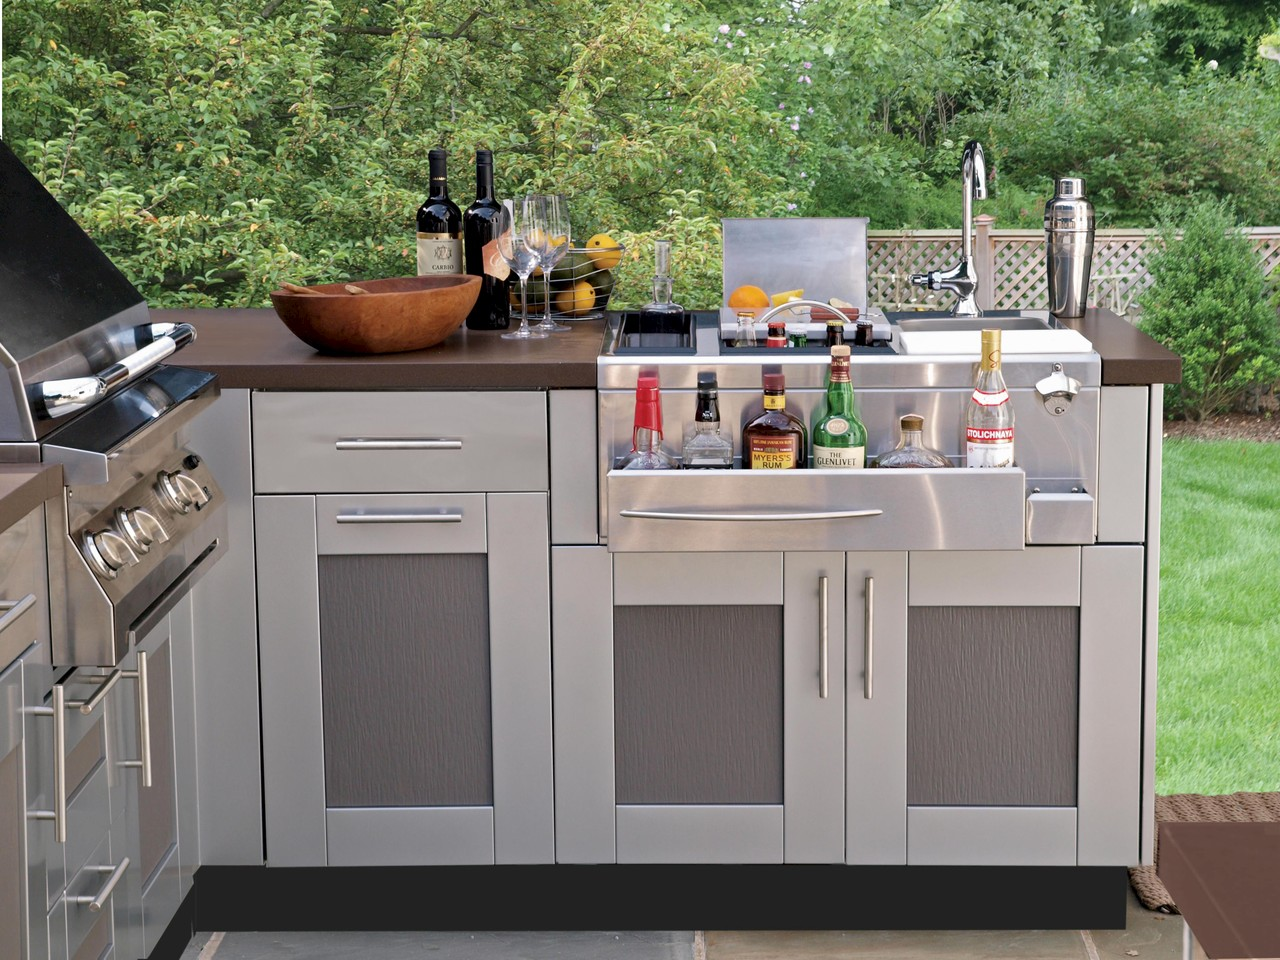 brown jordan outdoor kitchens overstock kitchen sinks that add value to homes patio and hearth blog